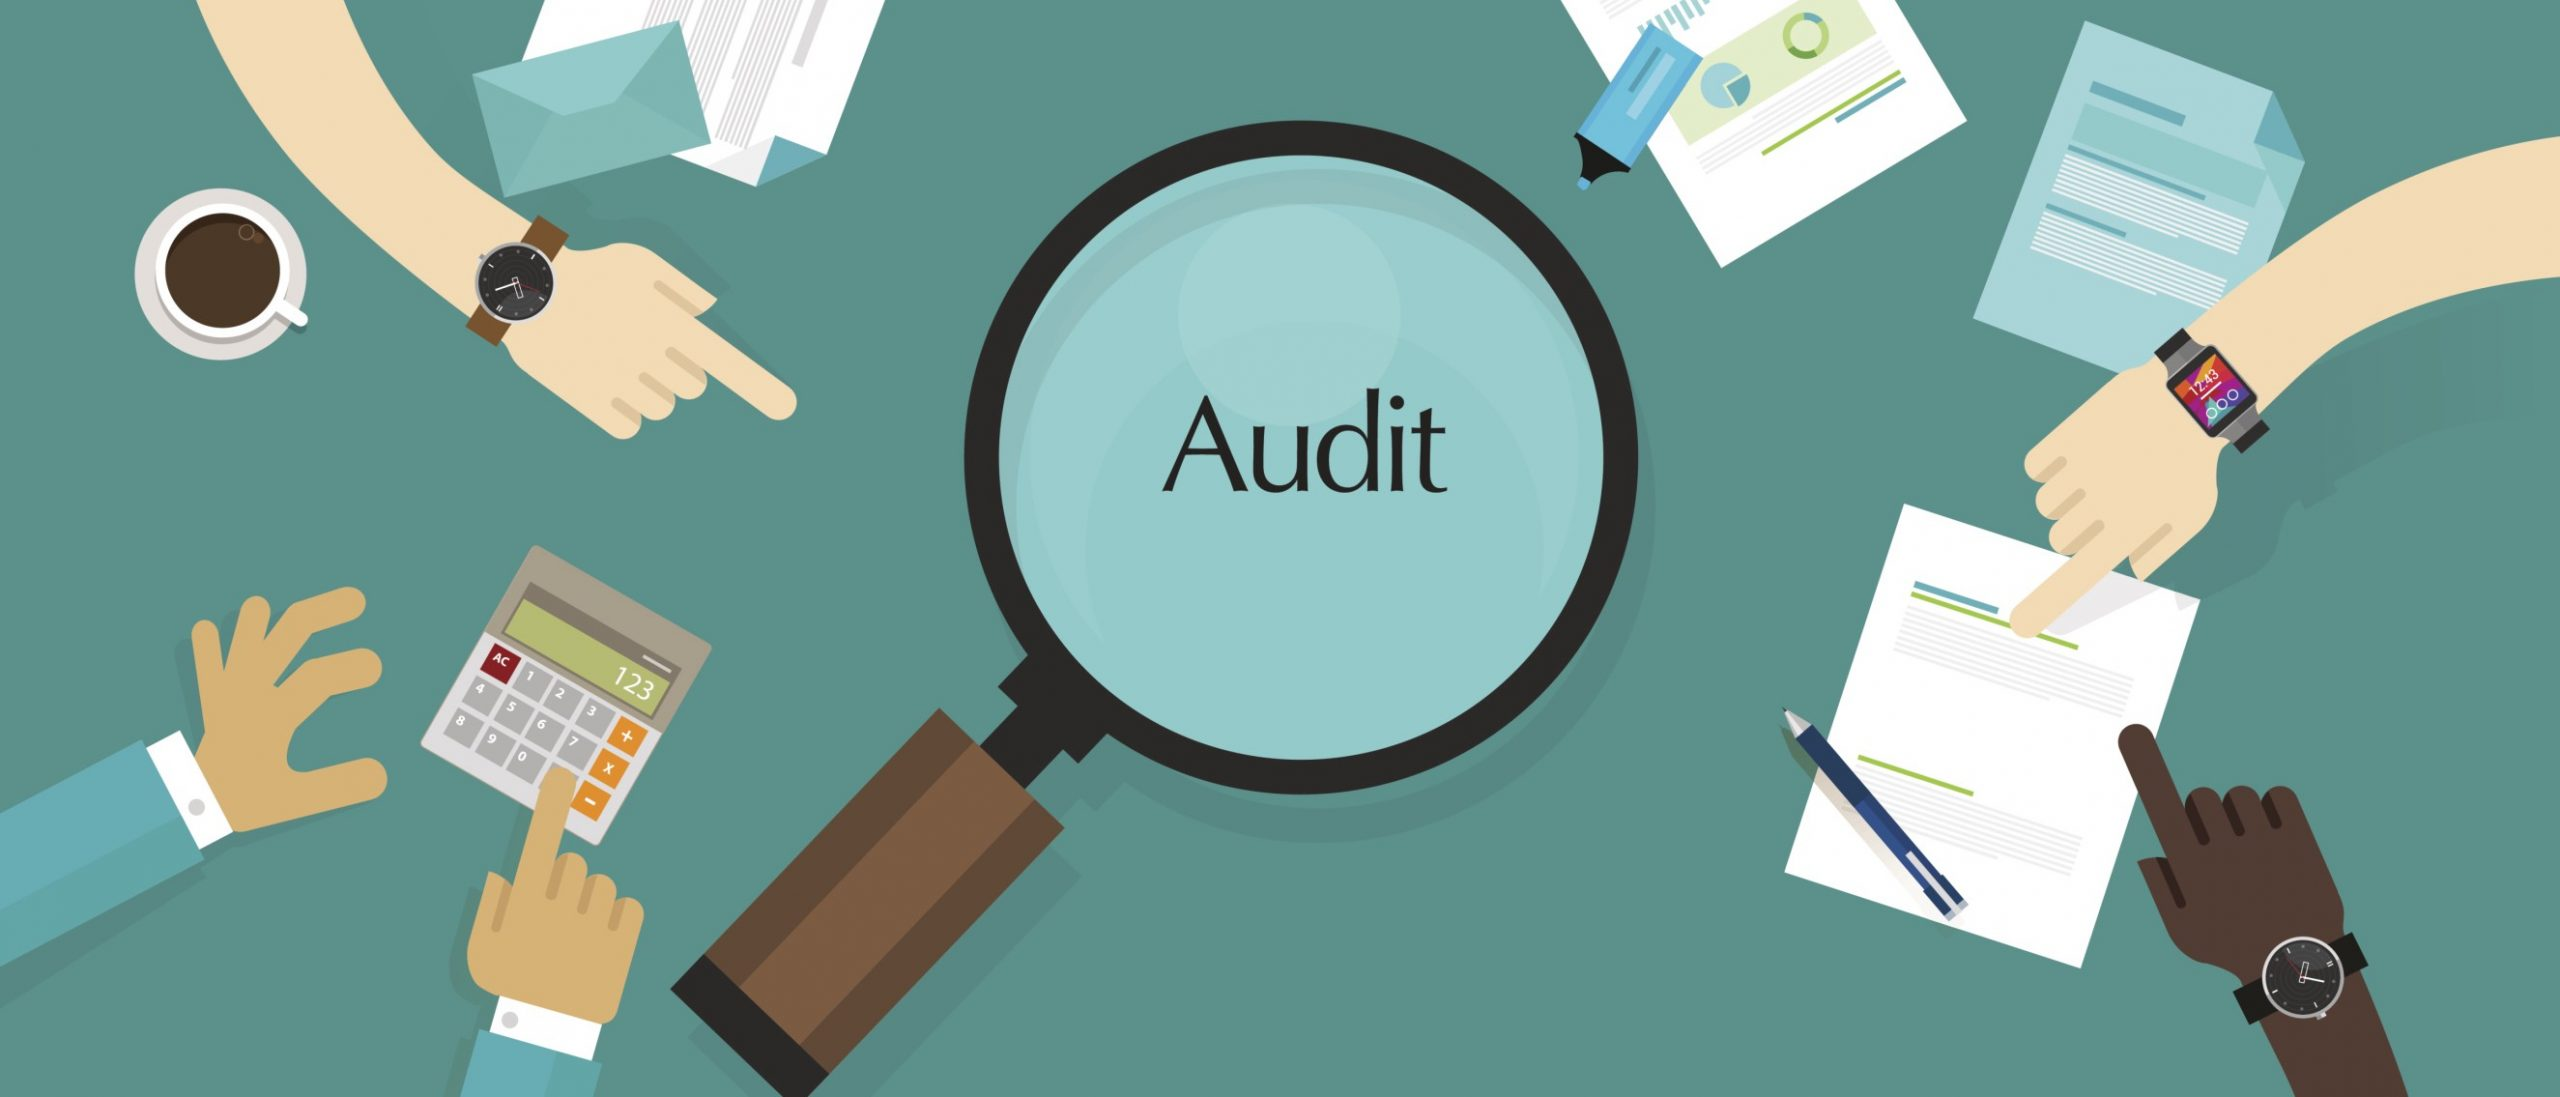 Importance of Auditing: 6 Reasons Why You Should Audit Your Financial Statements